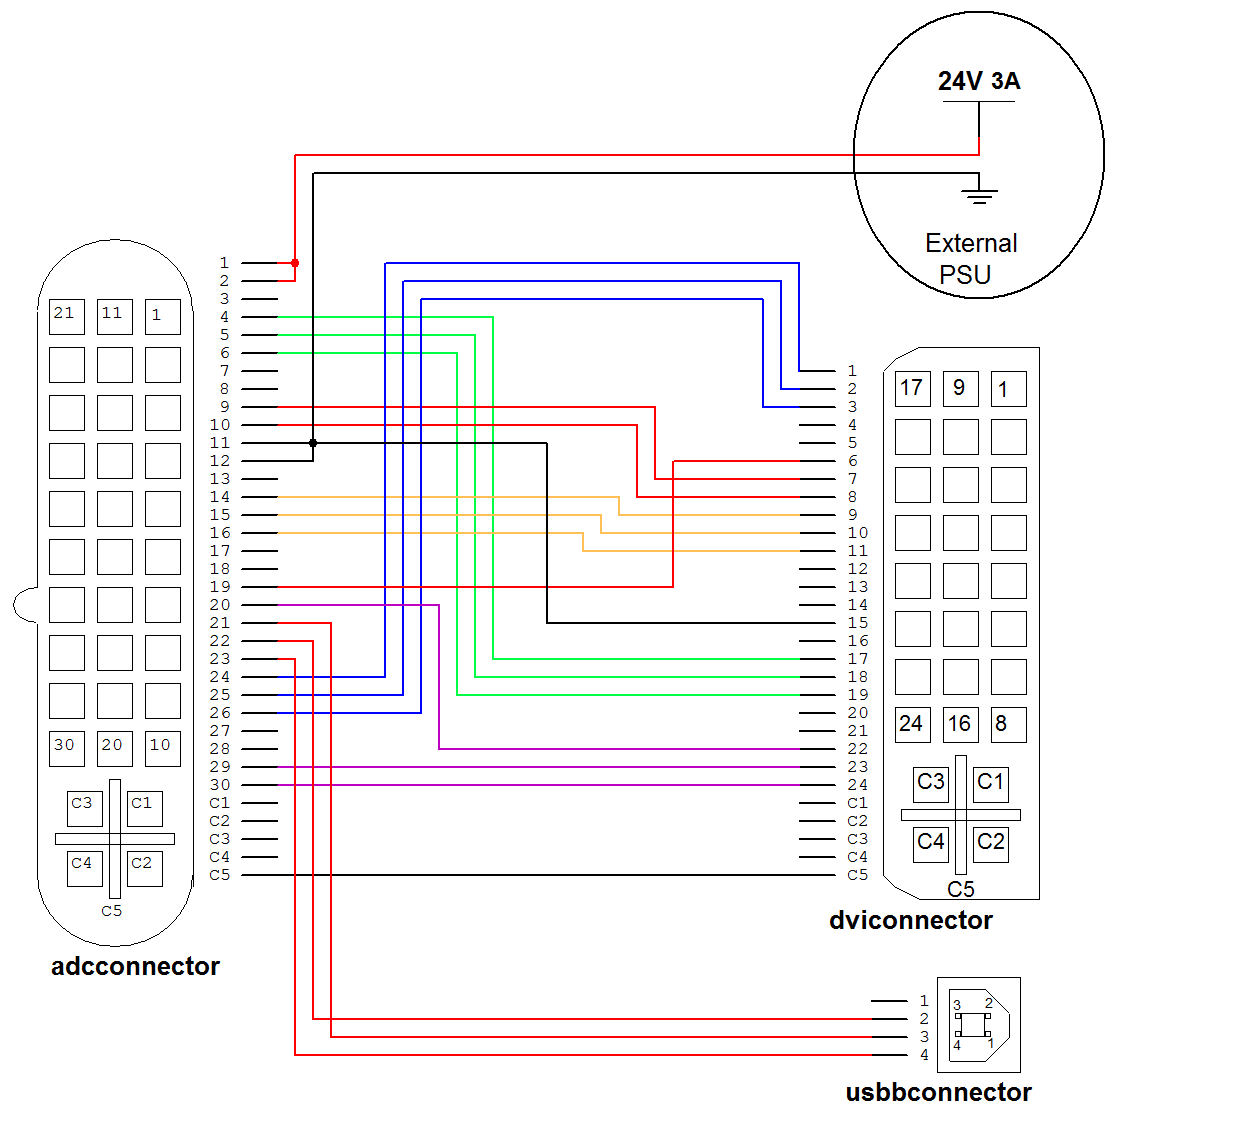 [SODI_2457]   Dvi D to Vga Wiring Diagram – moesappaloosas.com | schematic and wiring  diagram | Build Atv To Vga Diagram Wires |  | schematic and wiring diagram